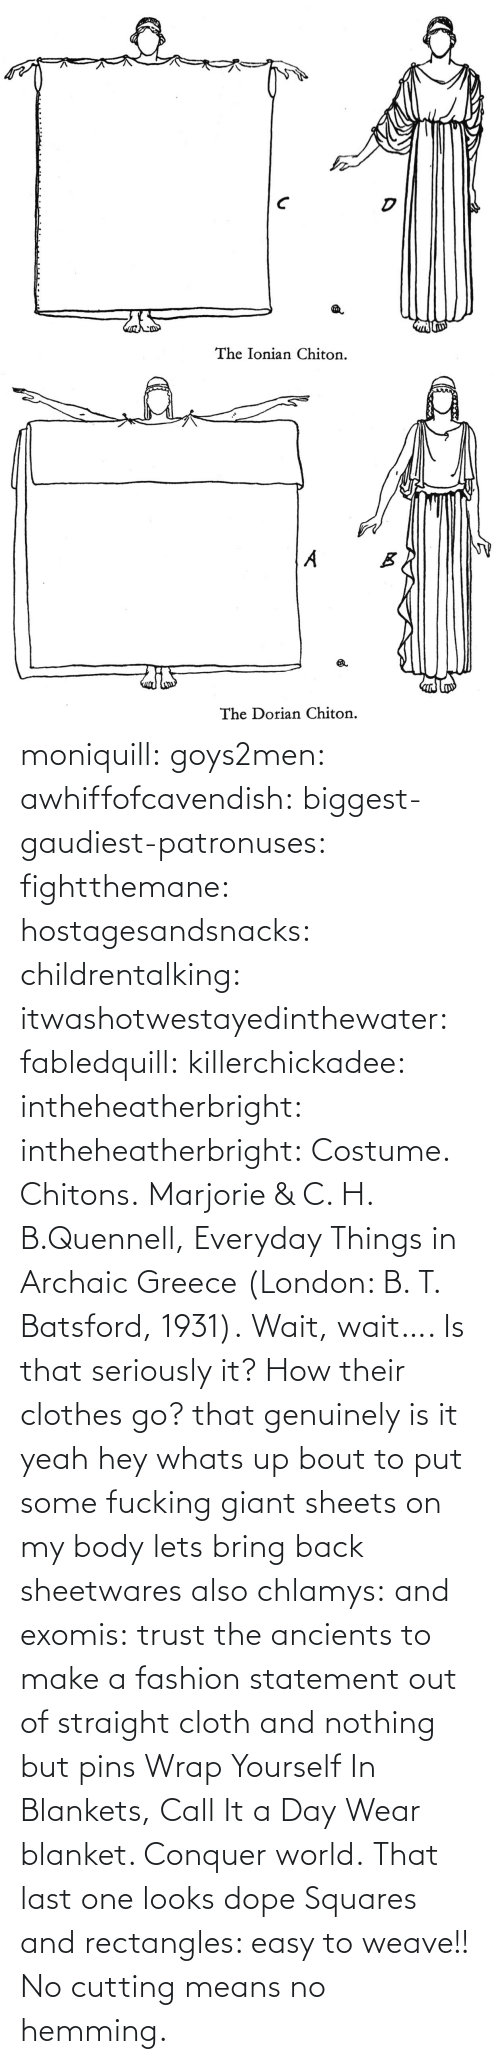 True: moniquill: goys2men:  awhiffofcavendish:  biggest-gaudiest-patronuses:  fightthemane:  hostagesandsnacks:  childrentalking:  itwashotwestayedinthewater:  fabledquill:  killerchickadee:  intheheatherbright:  intheheatherbright:  Costume. Chitons.  Marjorie & C. H. B.Quennell, Everyday Things in Archaic Greece (London: B. T. Batsford, 1931).  Wait, wait…. Is that seriously it? How their clothes go?  that genuinely is it  yeah hey whats up bout to put some fucking giant sheets on my body  lets bring back sheetwares  also chlamys: and exomis:  trust the ancients to make a fashion statement out of straight cloth and nothing but pins  Wrap Yourself In Blankets, Call It a Day  Wear blanket. Conquer world.   That last one looks dope    Squares and rectangles: easy to weave!! No cutting means no hemming.